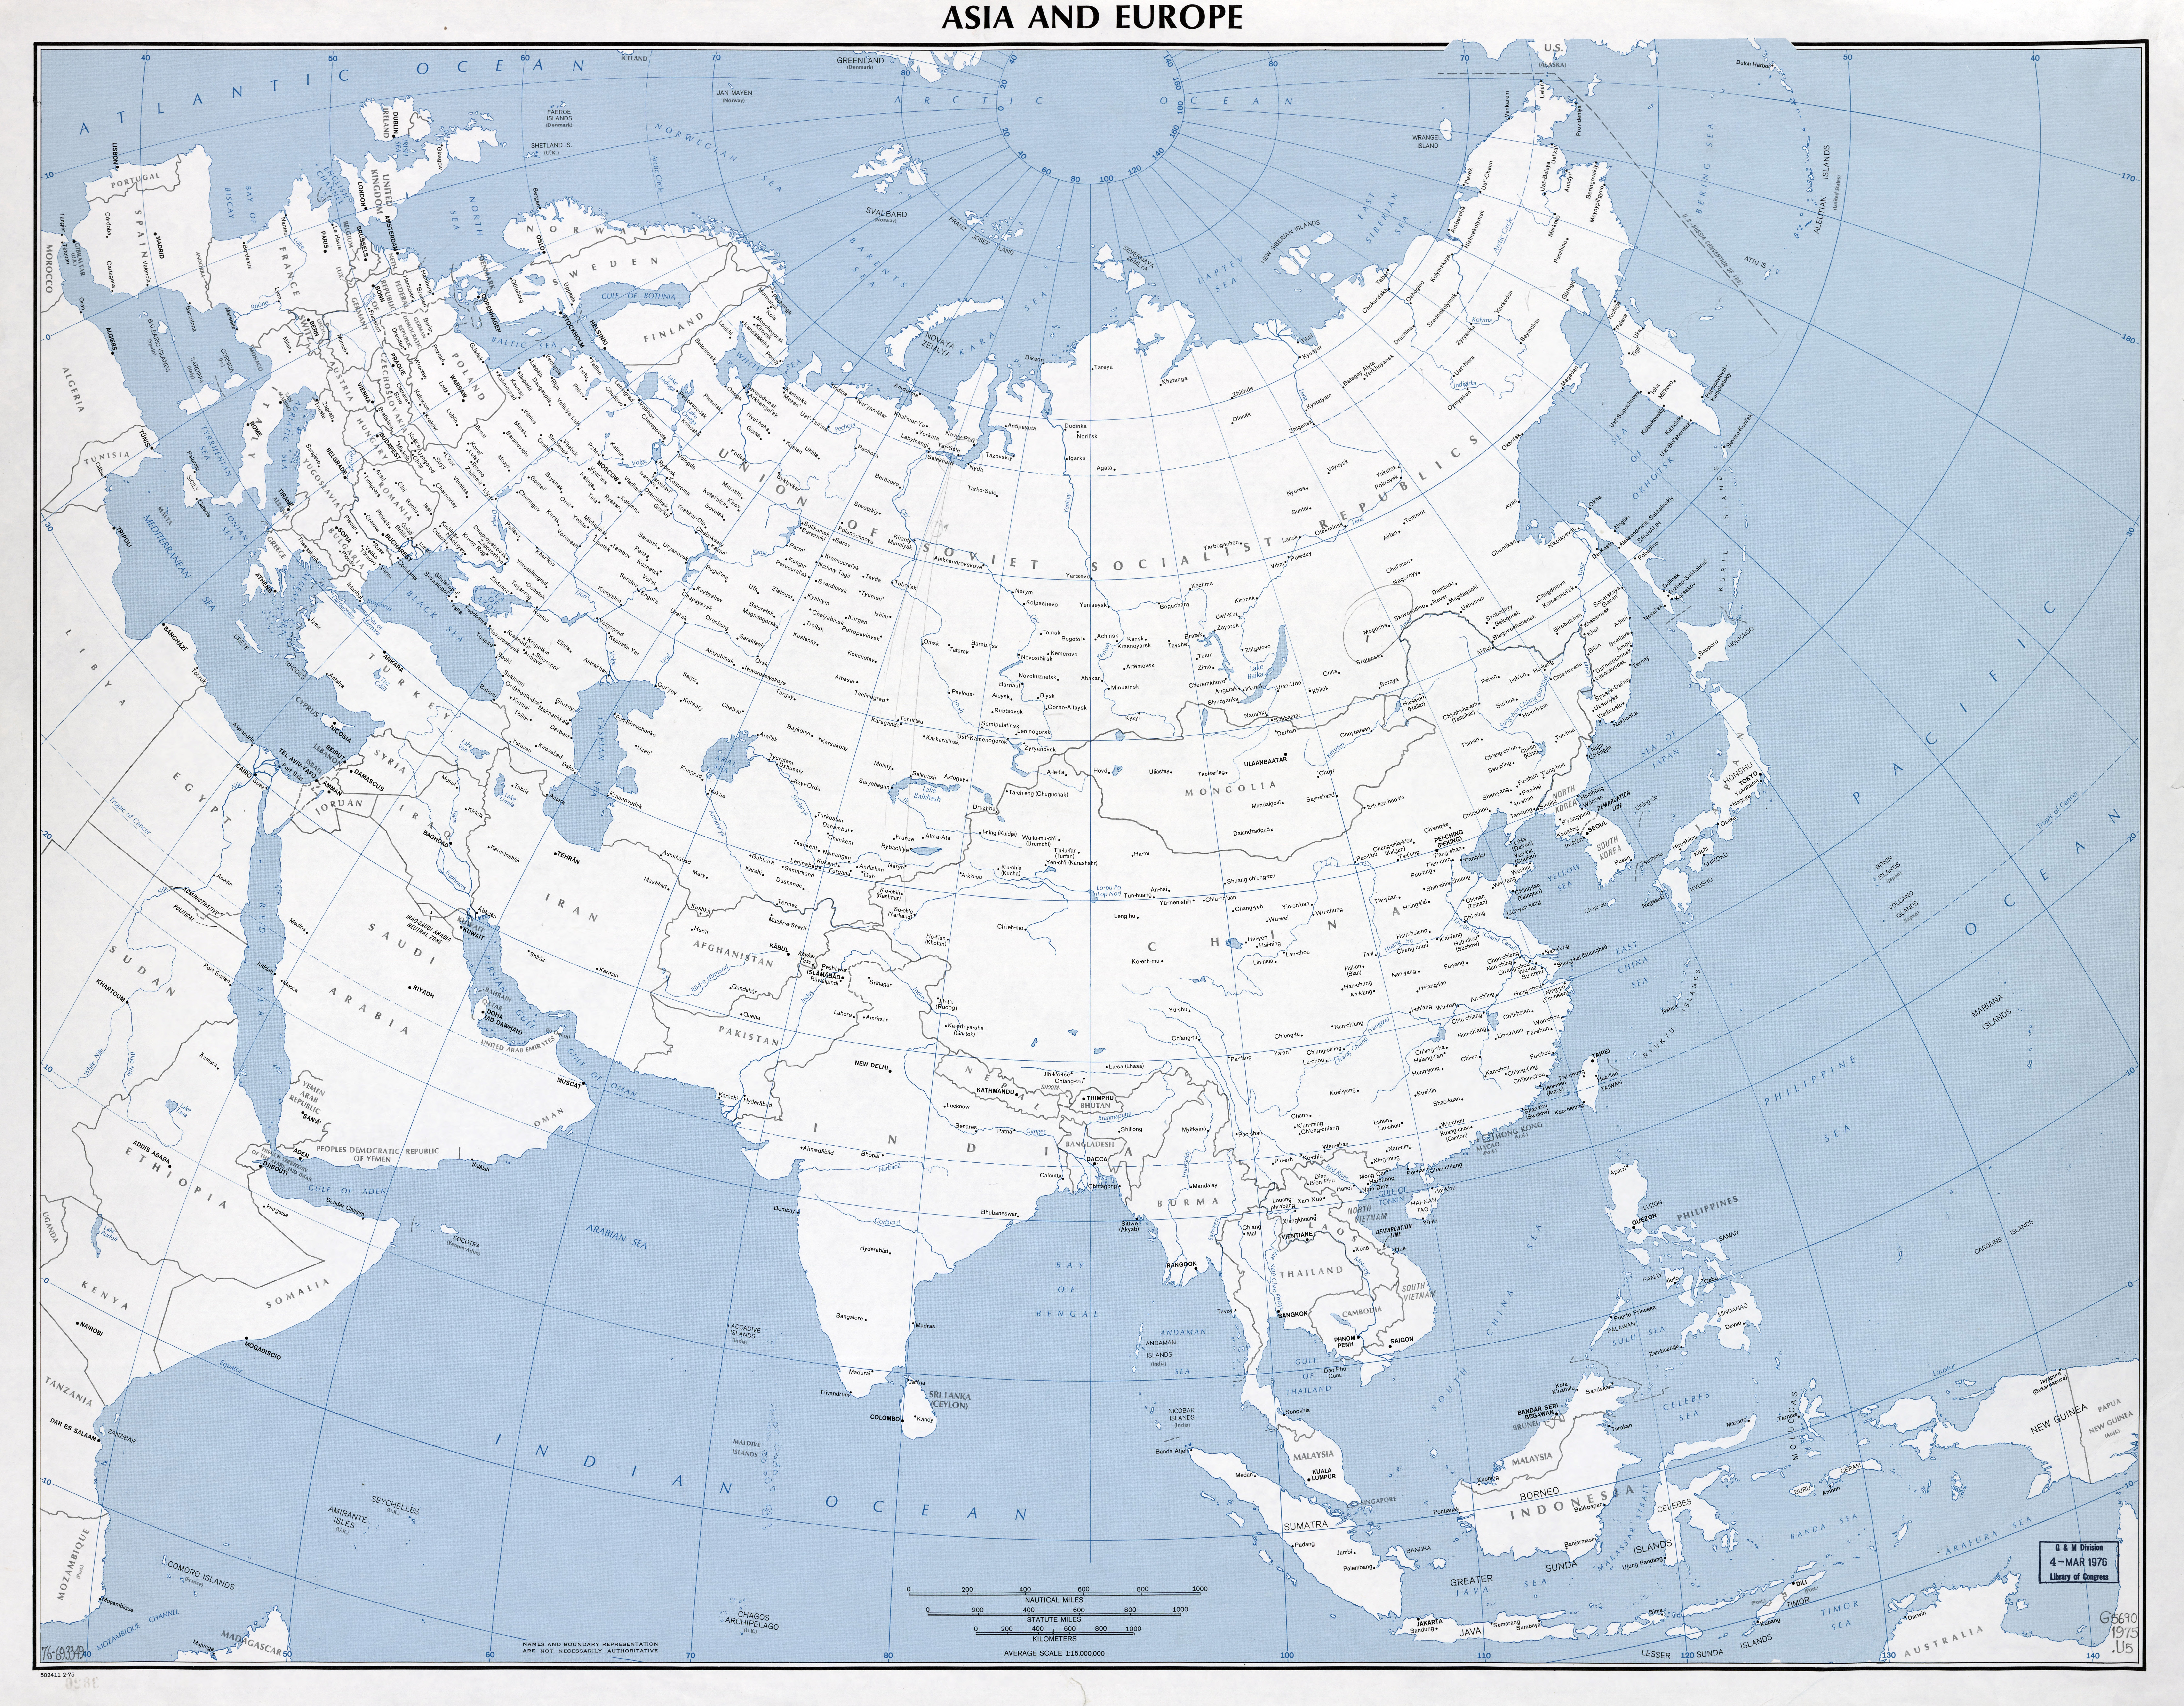 Large Scale Detailed Political Map Of Asia And Europe With Major